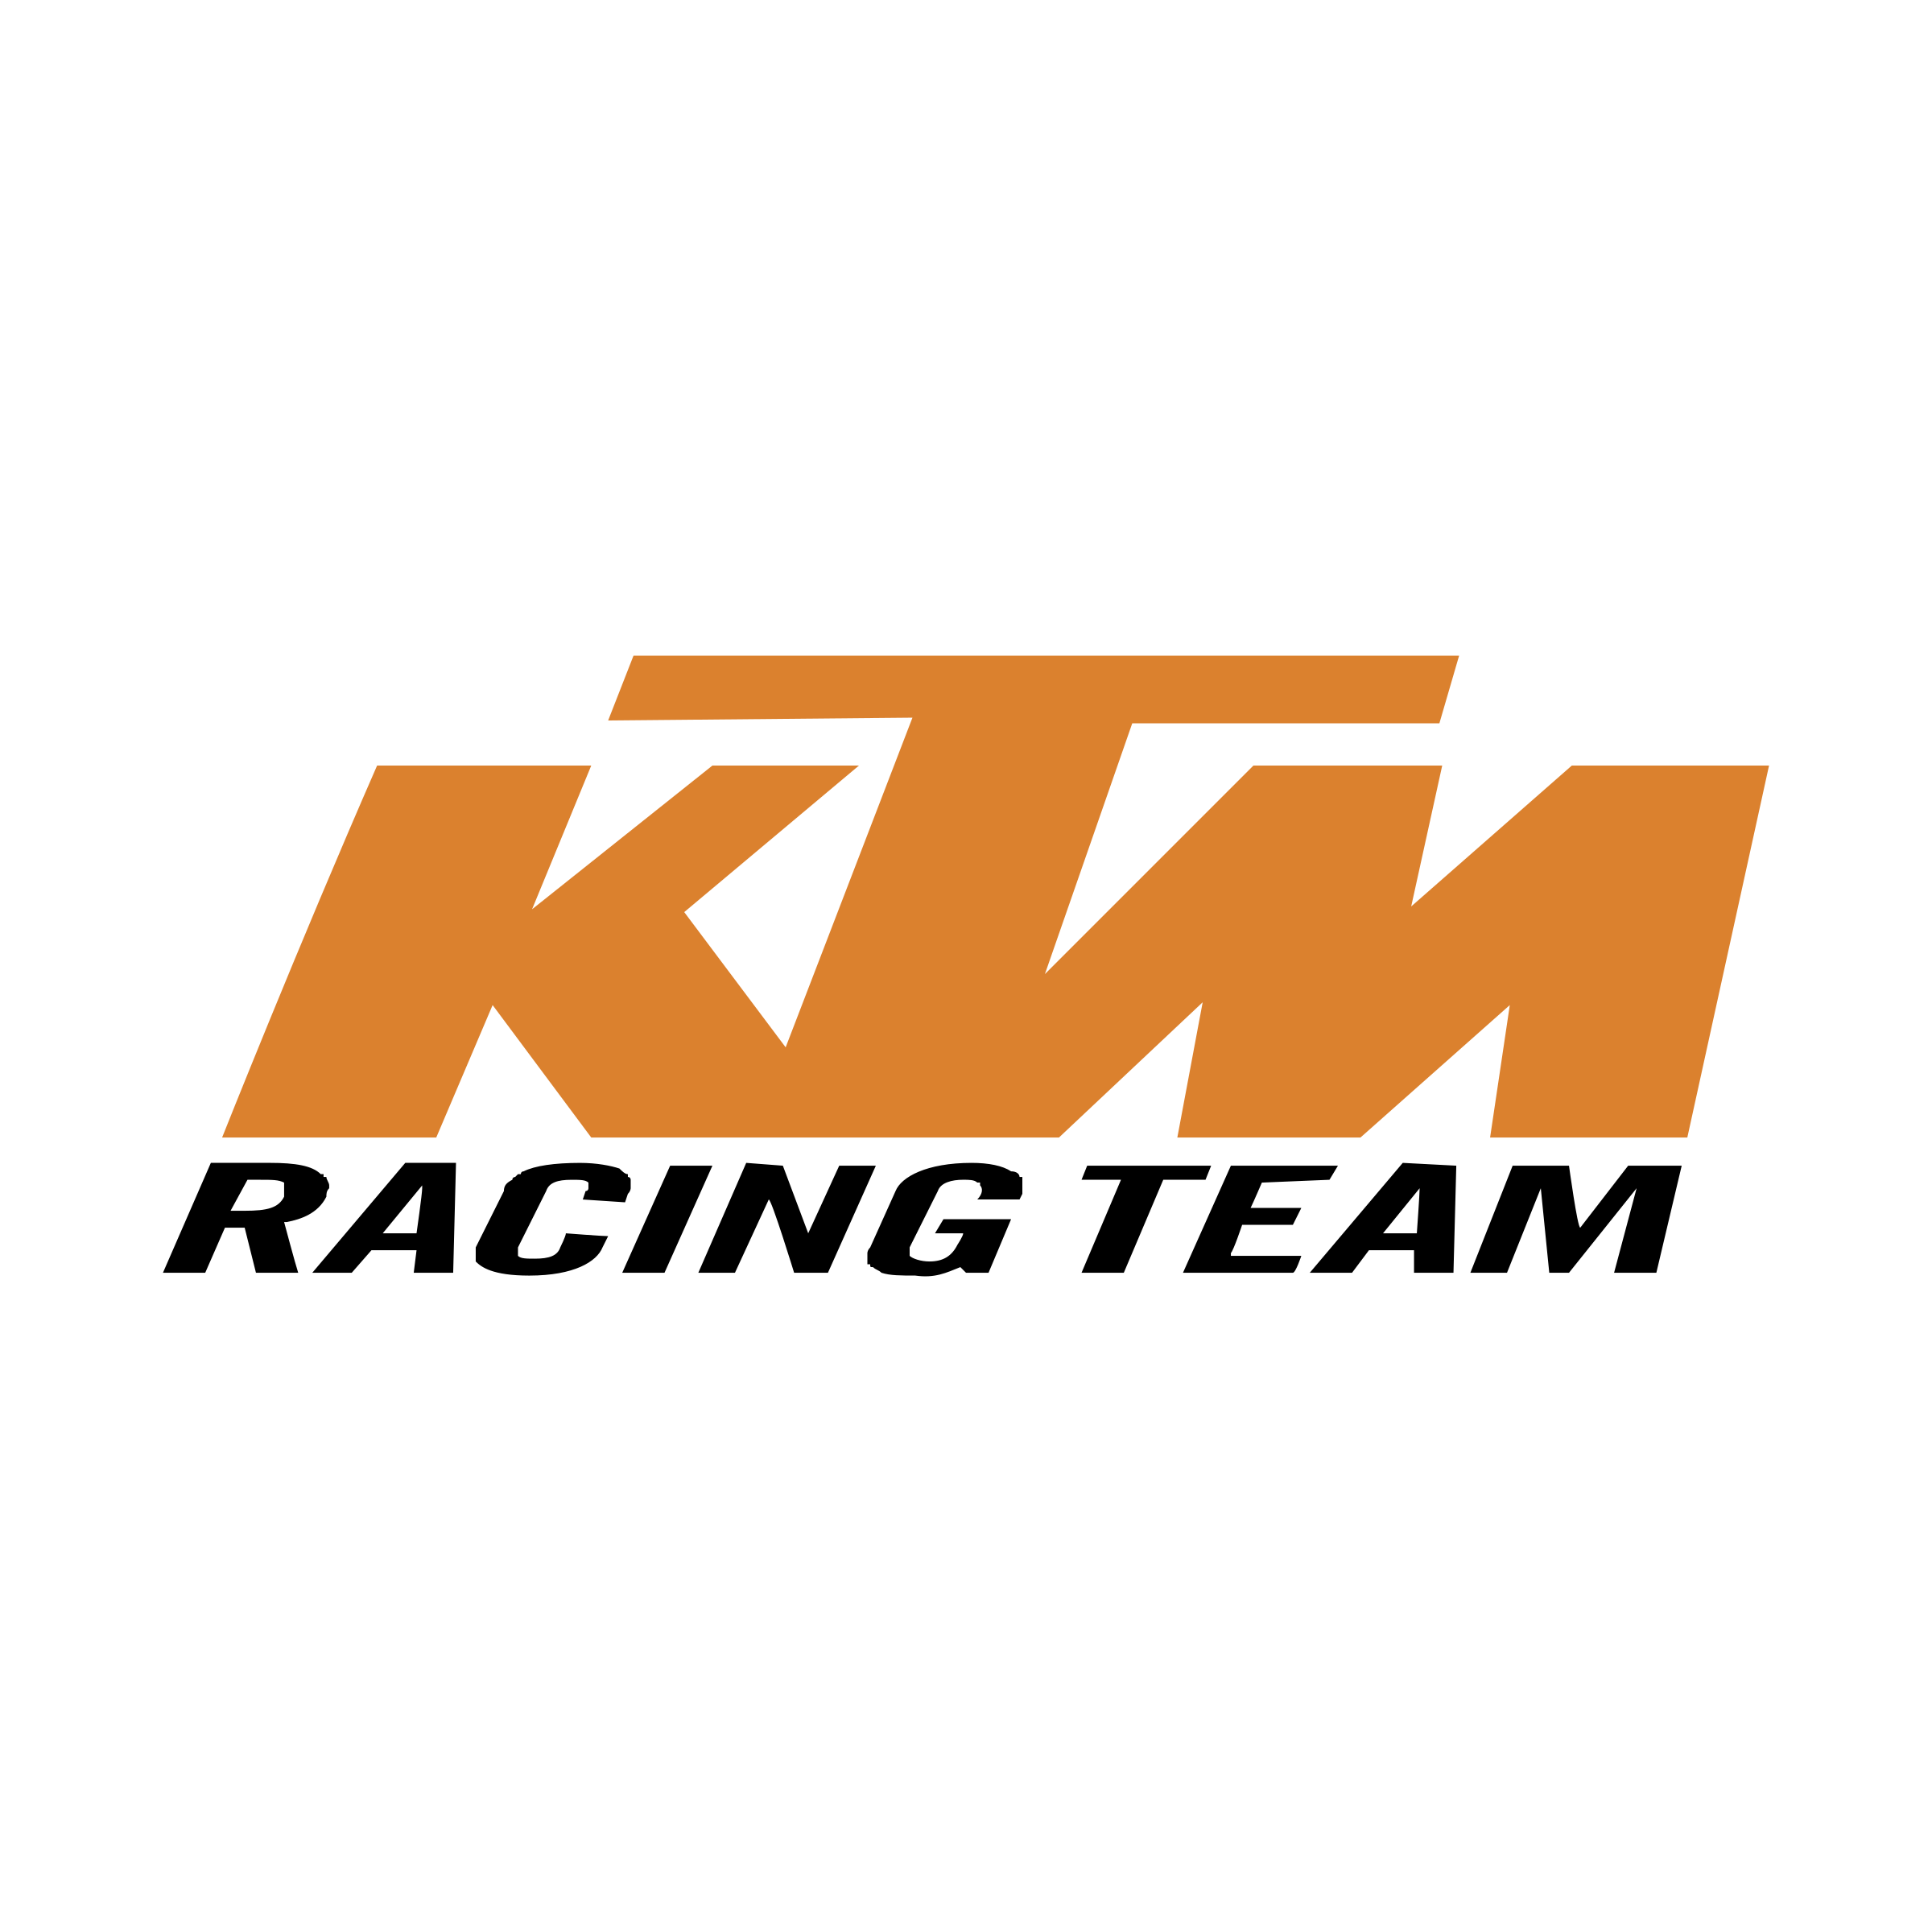 Ktm Logo, Vector Logo Of Ktm